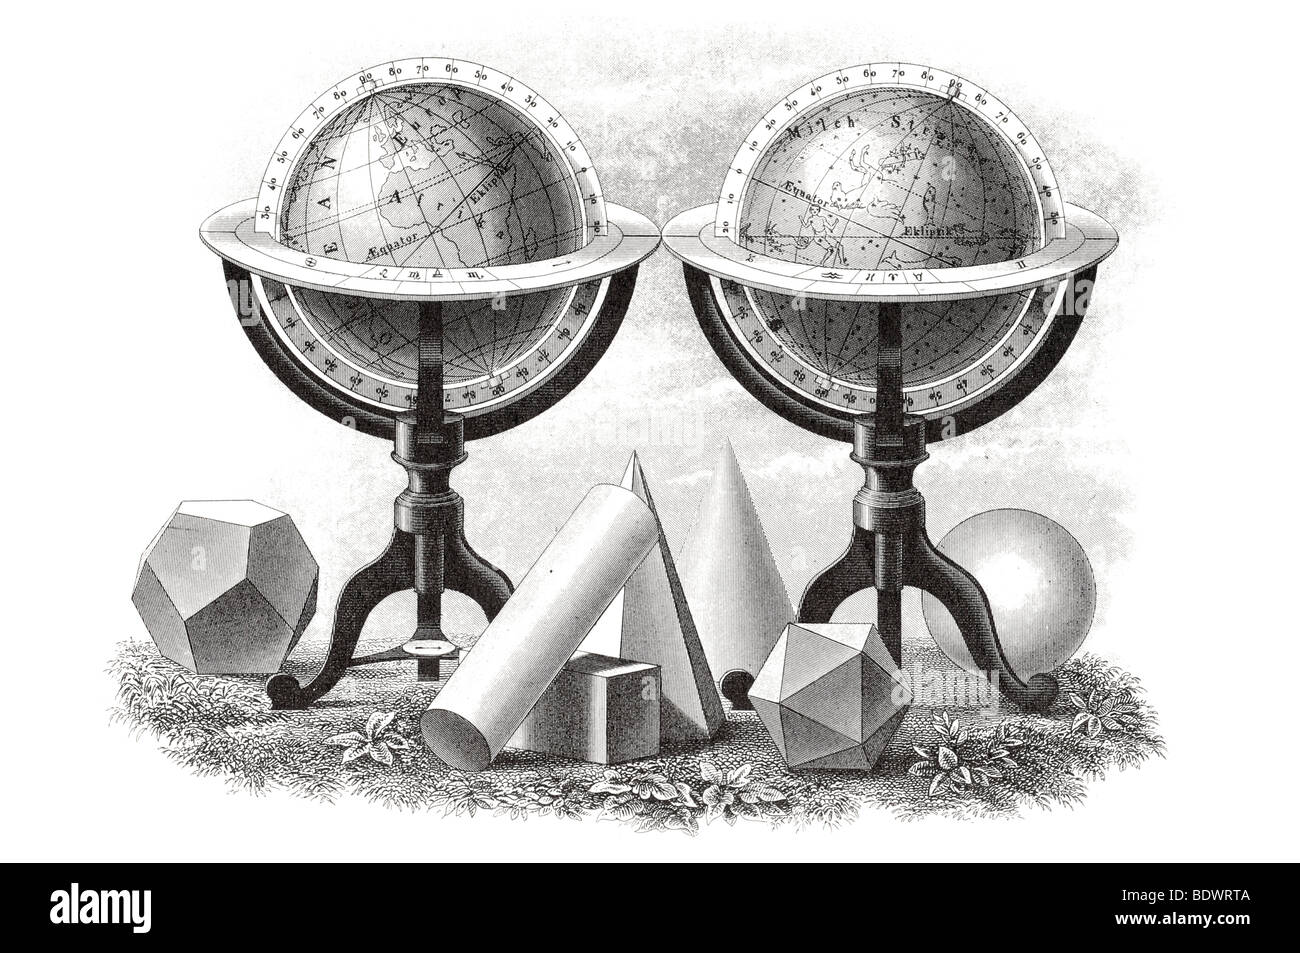 Mathematical and geometrical problems compass instrument ruler measure astrolabe sextant ellipse earth rotation - Stock Image